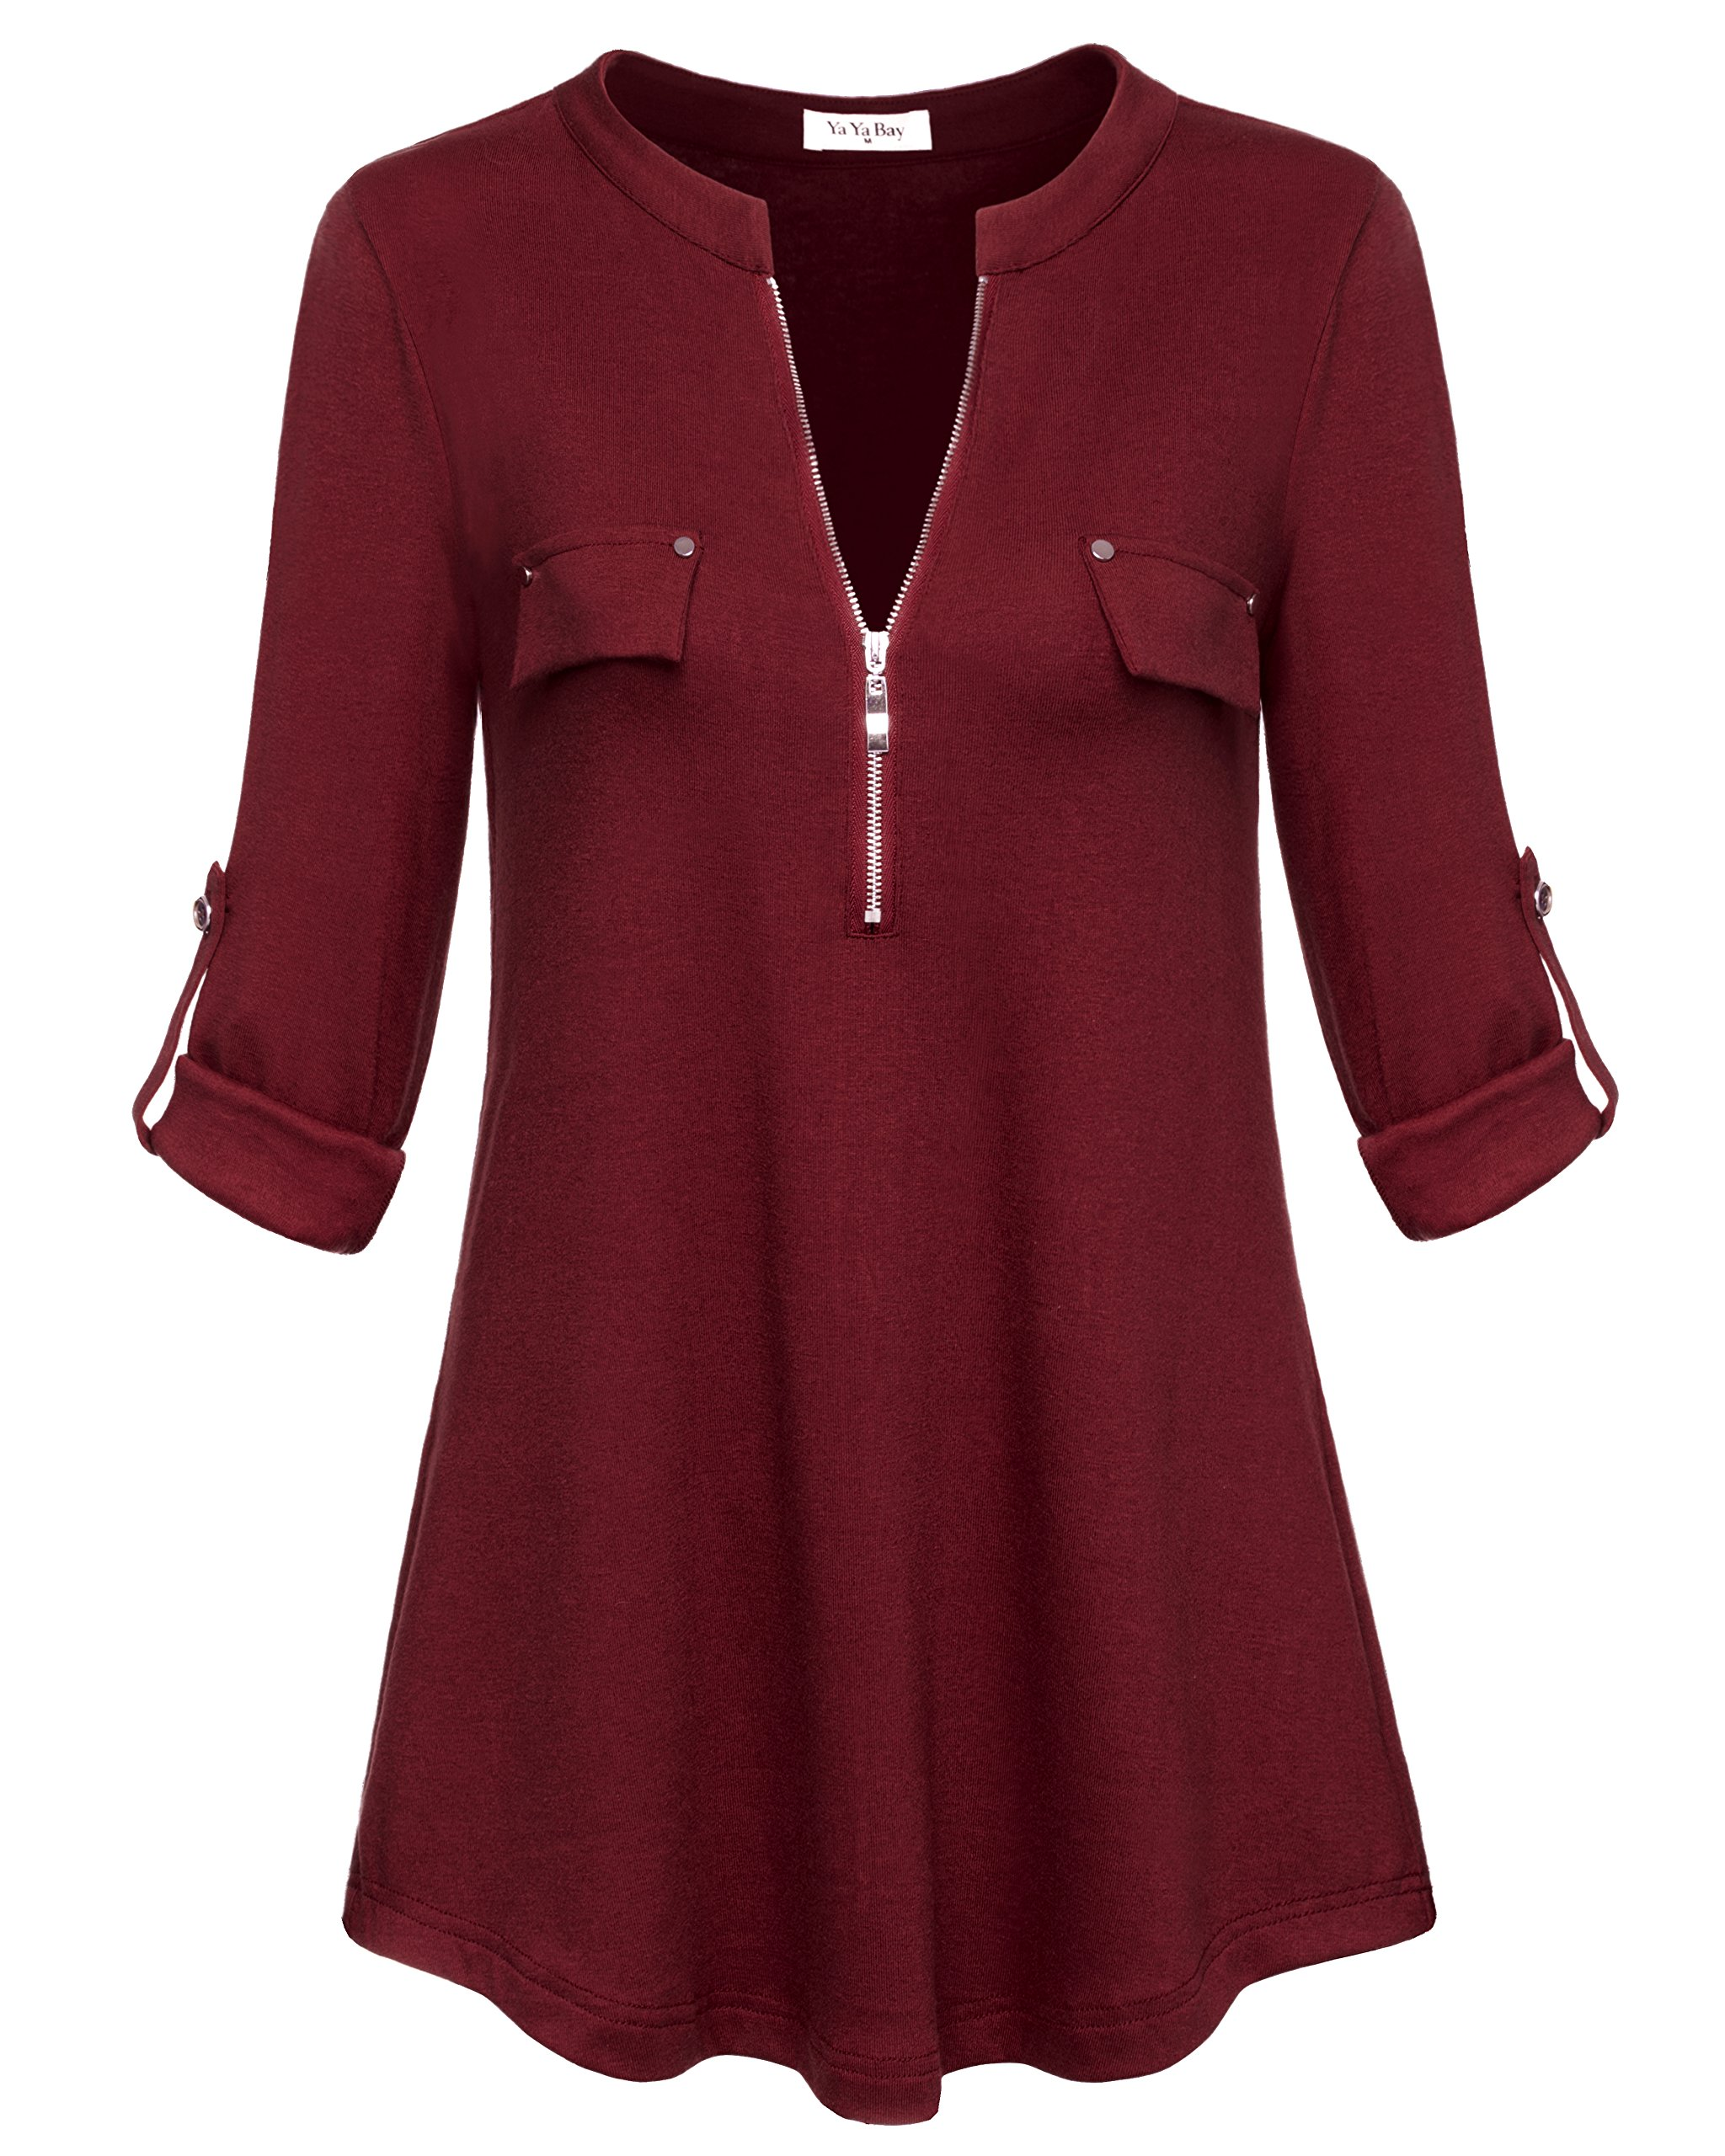 YaYa Bay Maternity Tunics, Neckline Design Ladies Long Sleeve Tunic Office Blouses with Pocket Zip Casual Blouses XXL Burgundy Blouse for Work